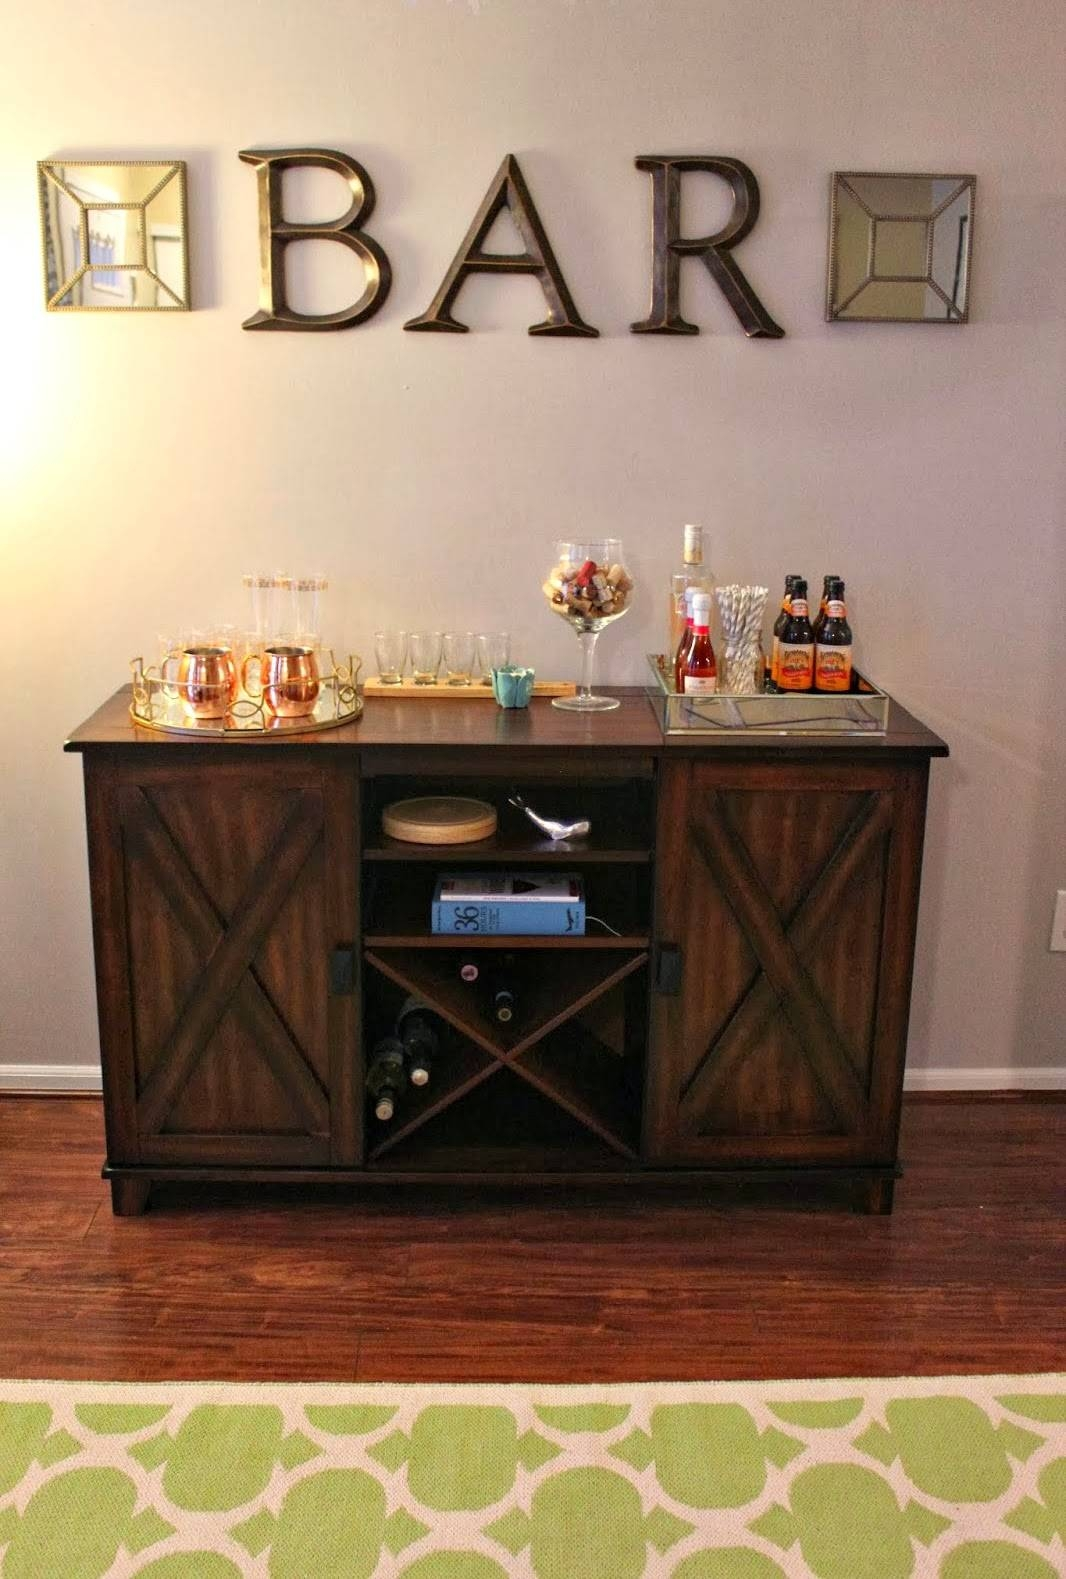 Cool Wall Art For Home Bar Area 23 Remodel With Wall Art For Home Pertaining To Most Recent Wall Art For Bar Area (View 11 of 20)